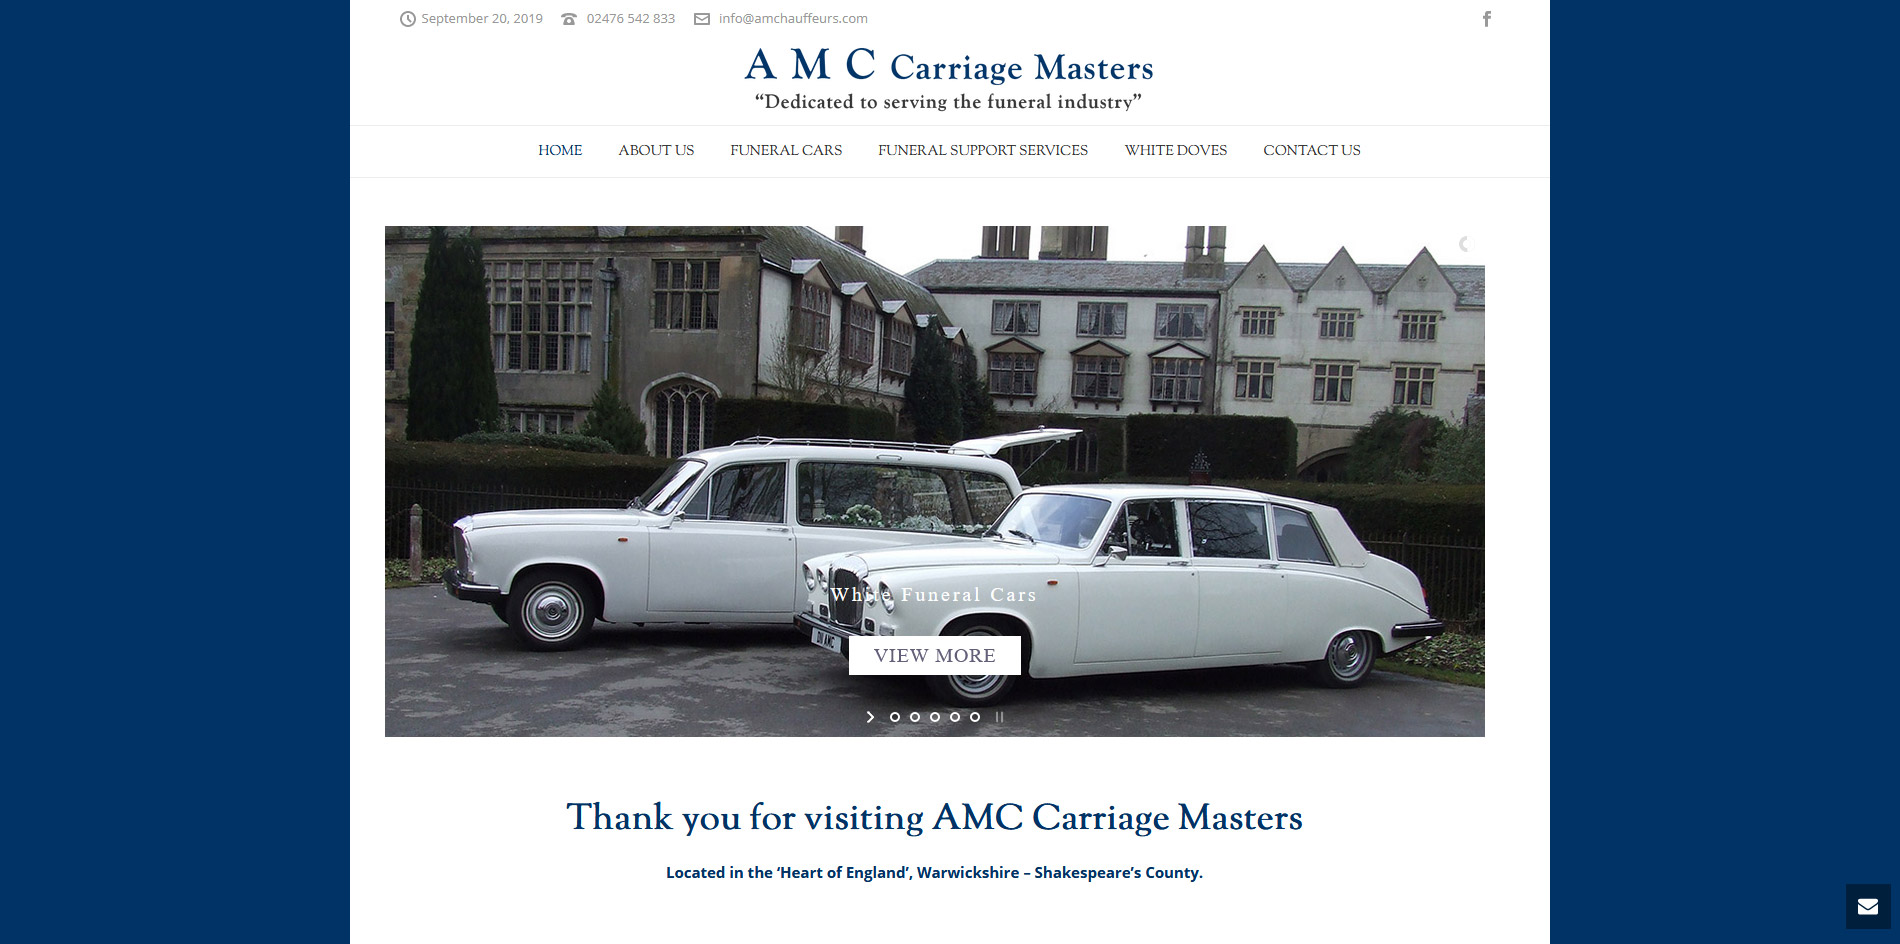 AMC Carriage Masters Website